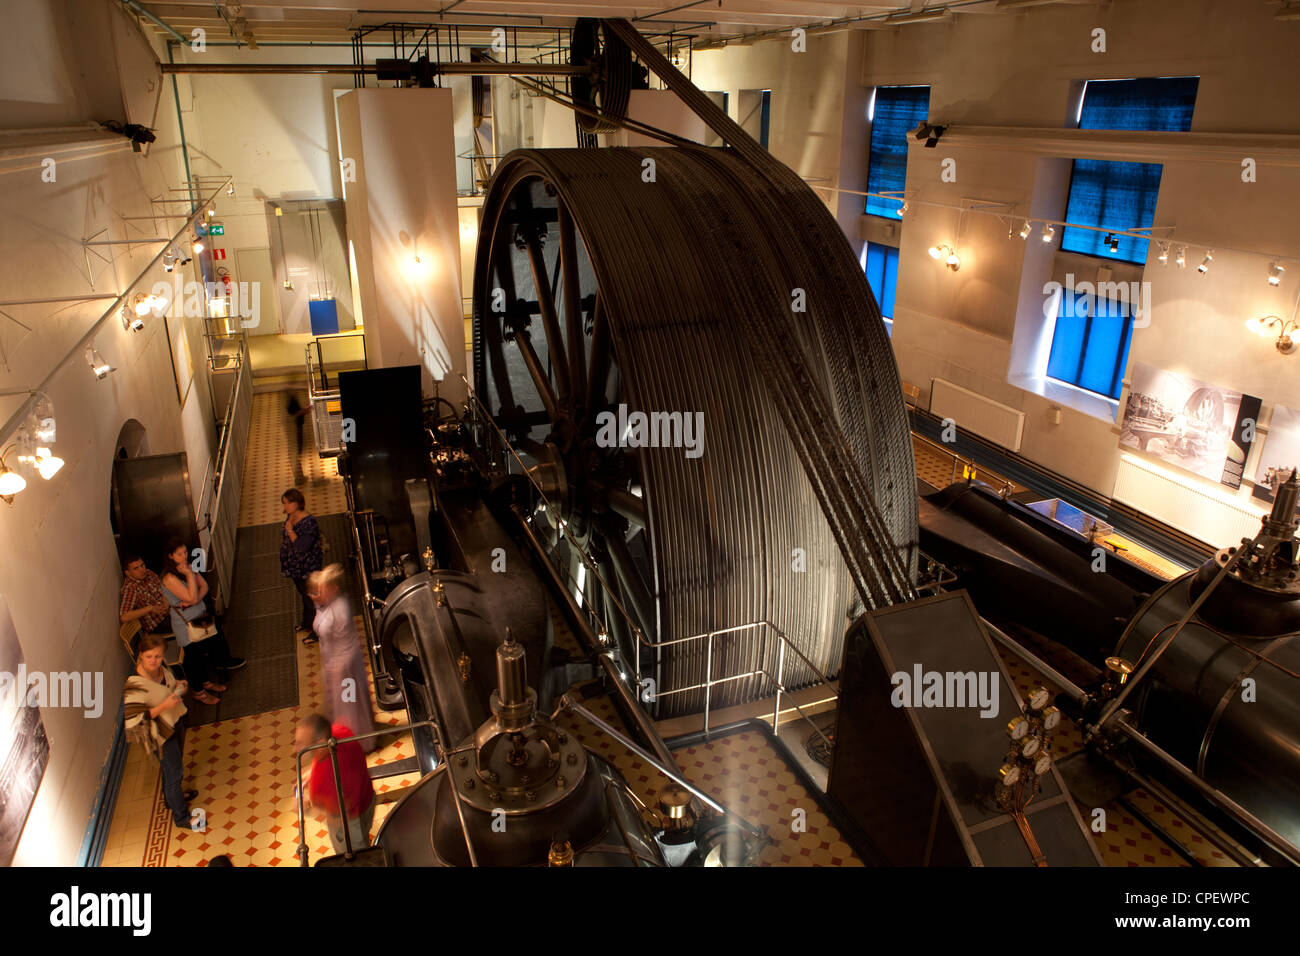 Museum of Labour Tampere Finland - Stock Image